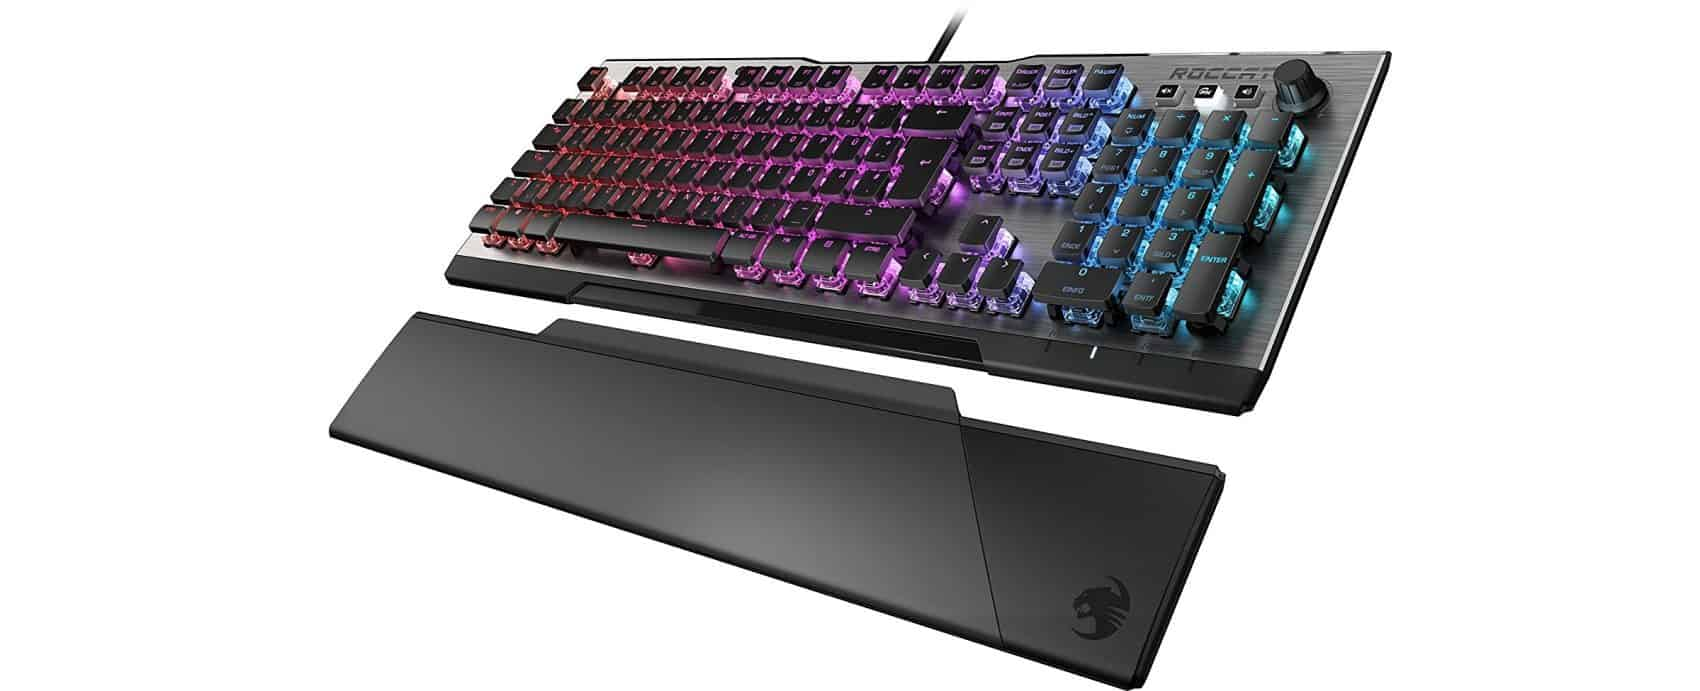 b693a9cfafd Best Gaming Keyboards in 2019: Top Keyboards Created For Gamers ...